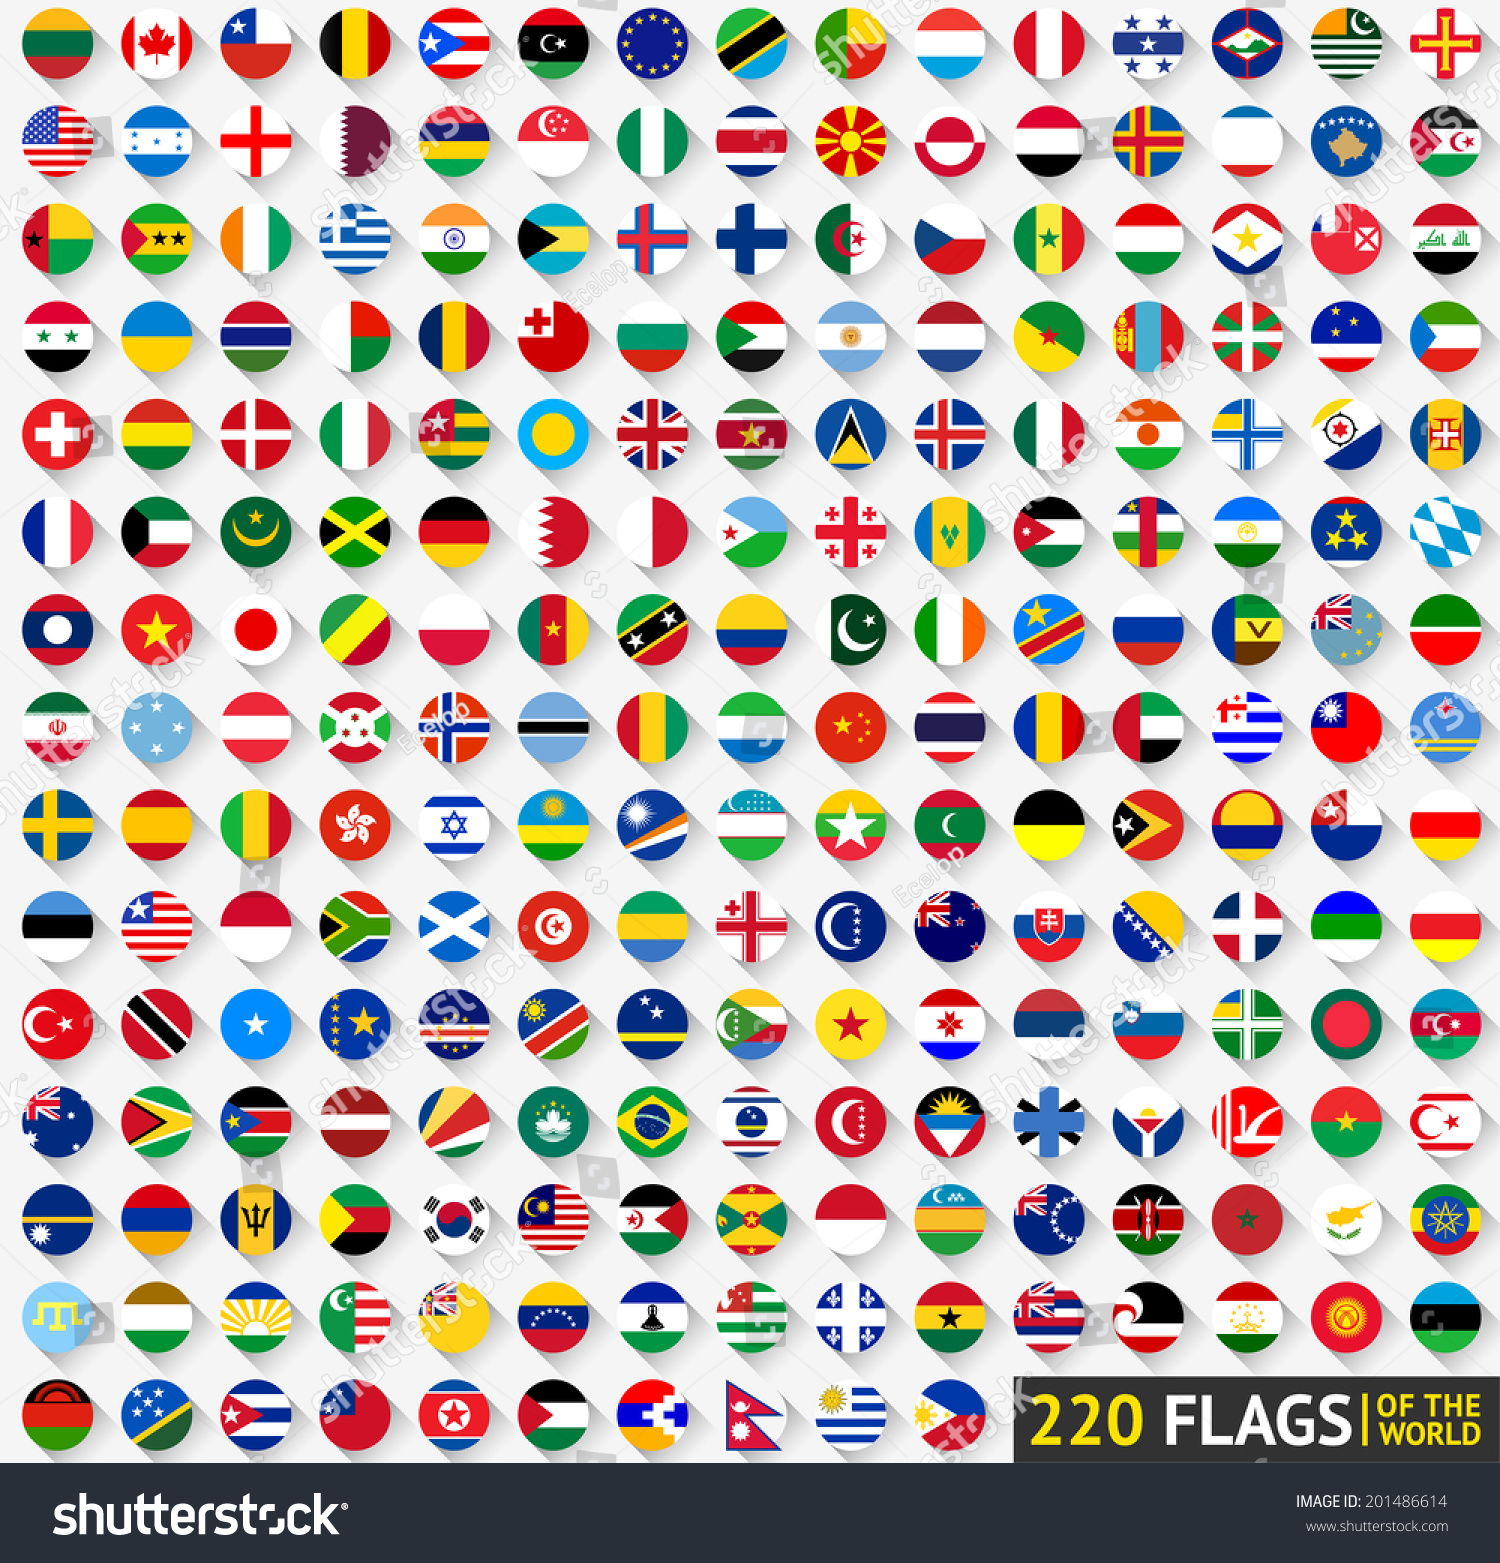 220 Flags of the world, circular shape, flat vector illustration #201486614